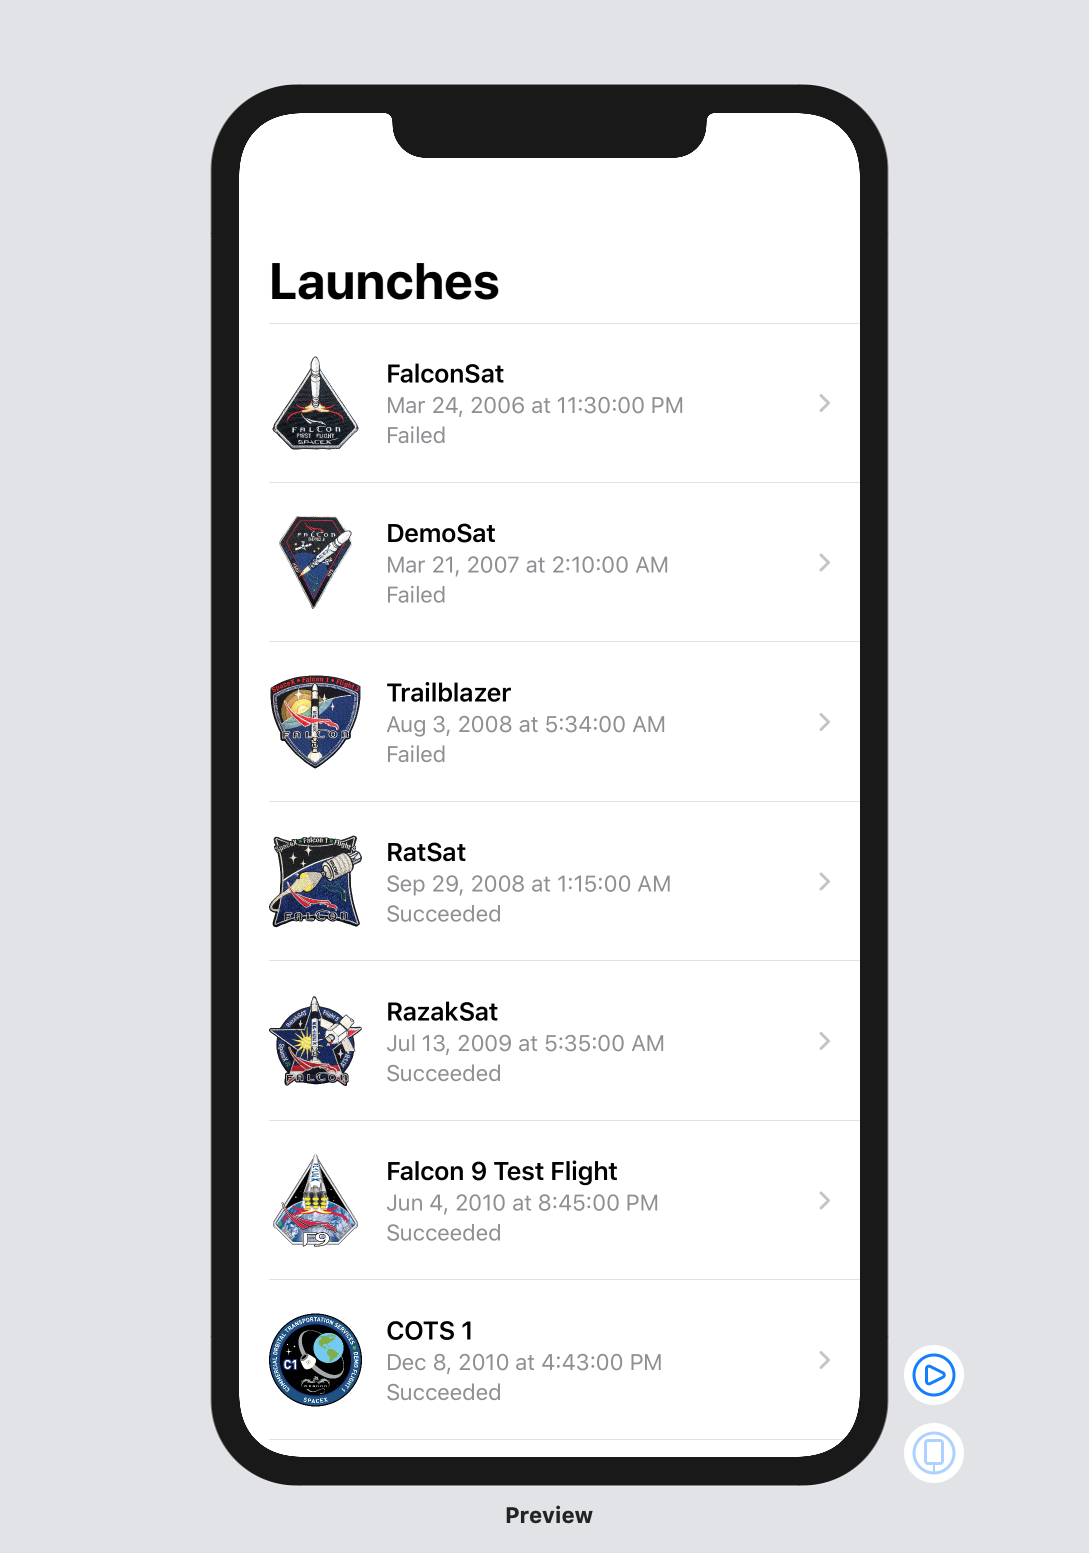 launches view